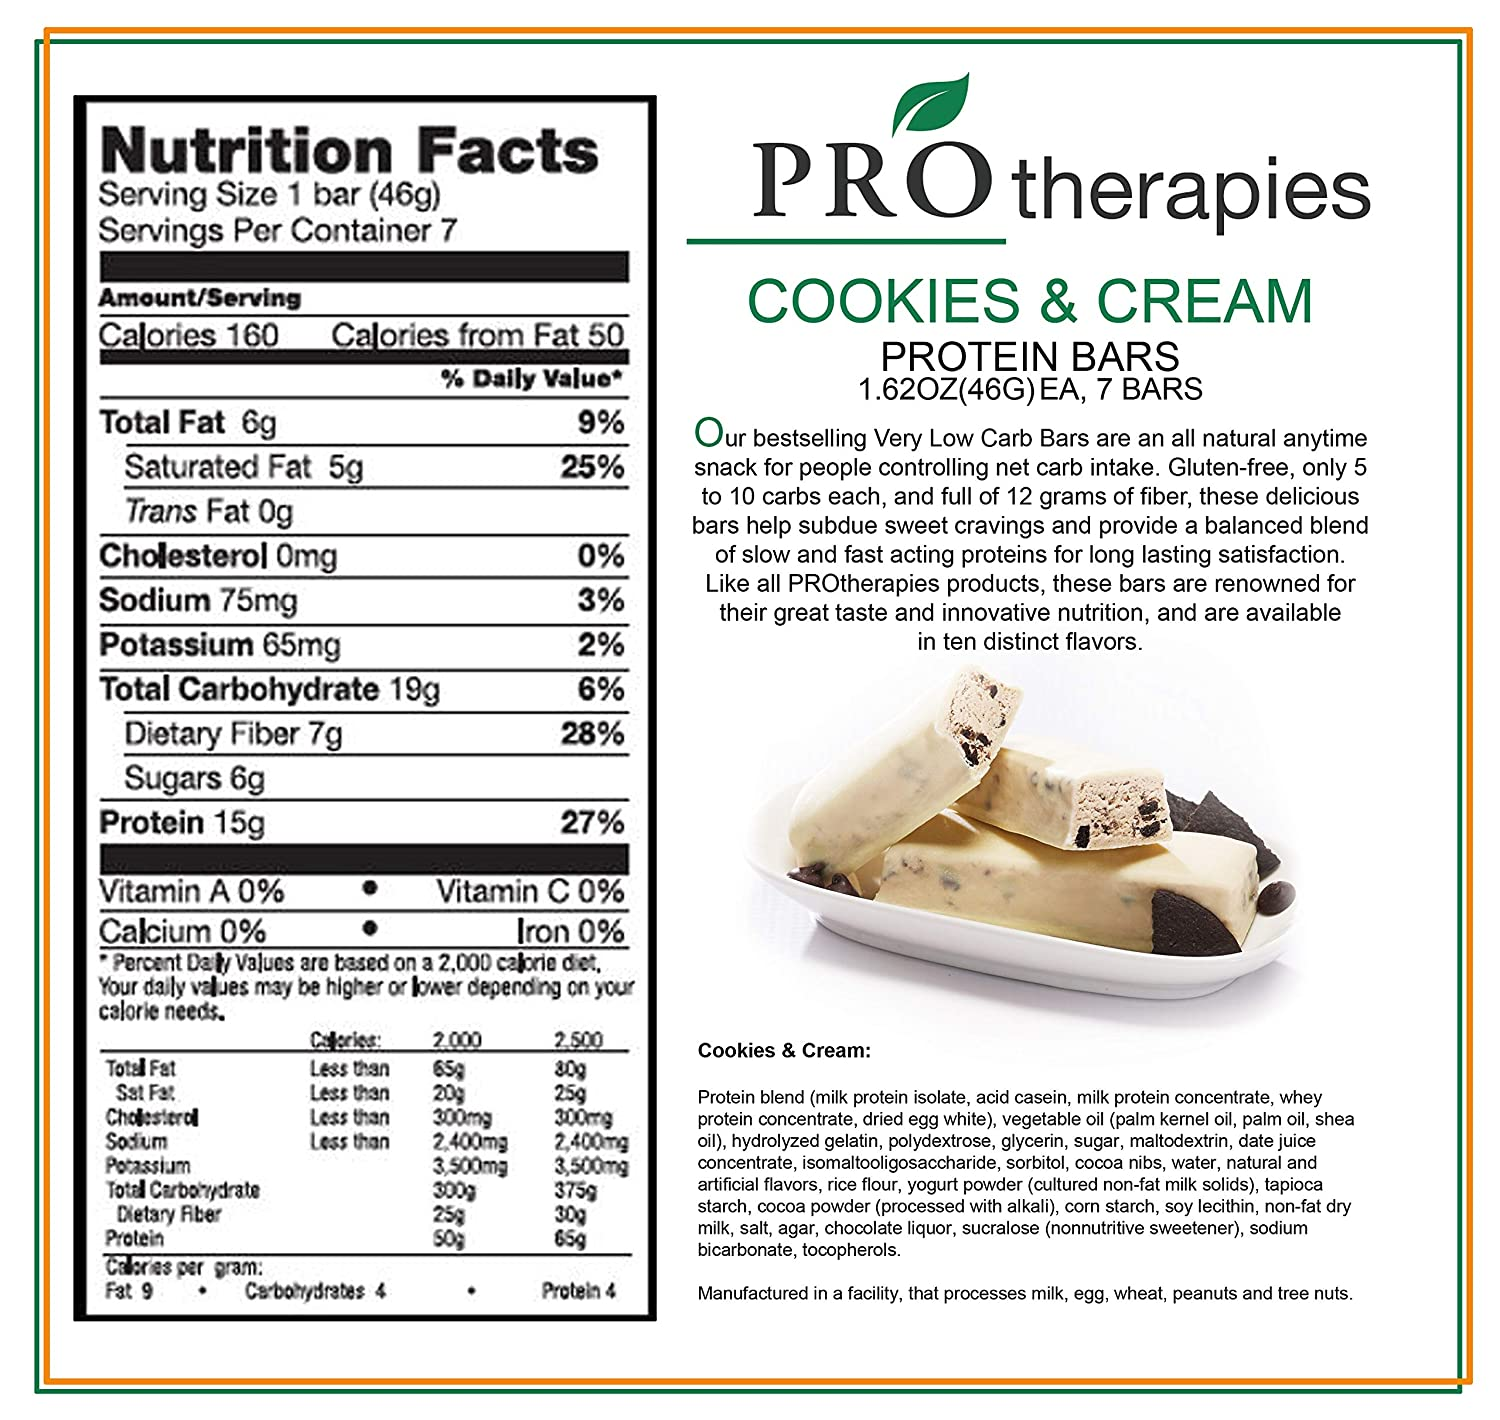 Amazon.com: ProTherapies Protein Bar 15g- Low Carb High-Protein Weight Loss Snack Bar for Healthy Diets, Cookies & Cream, 7 Count: Health & Personal Care